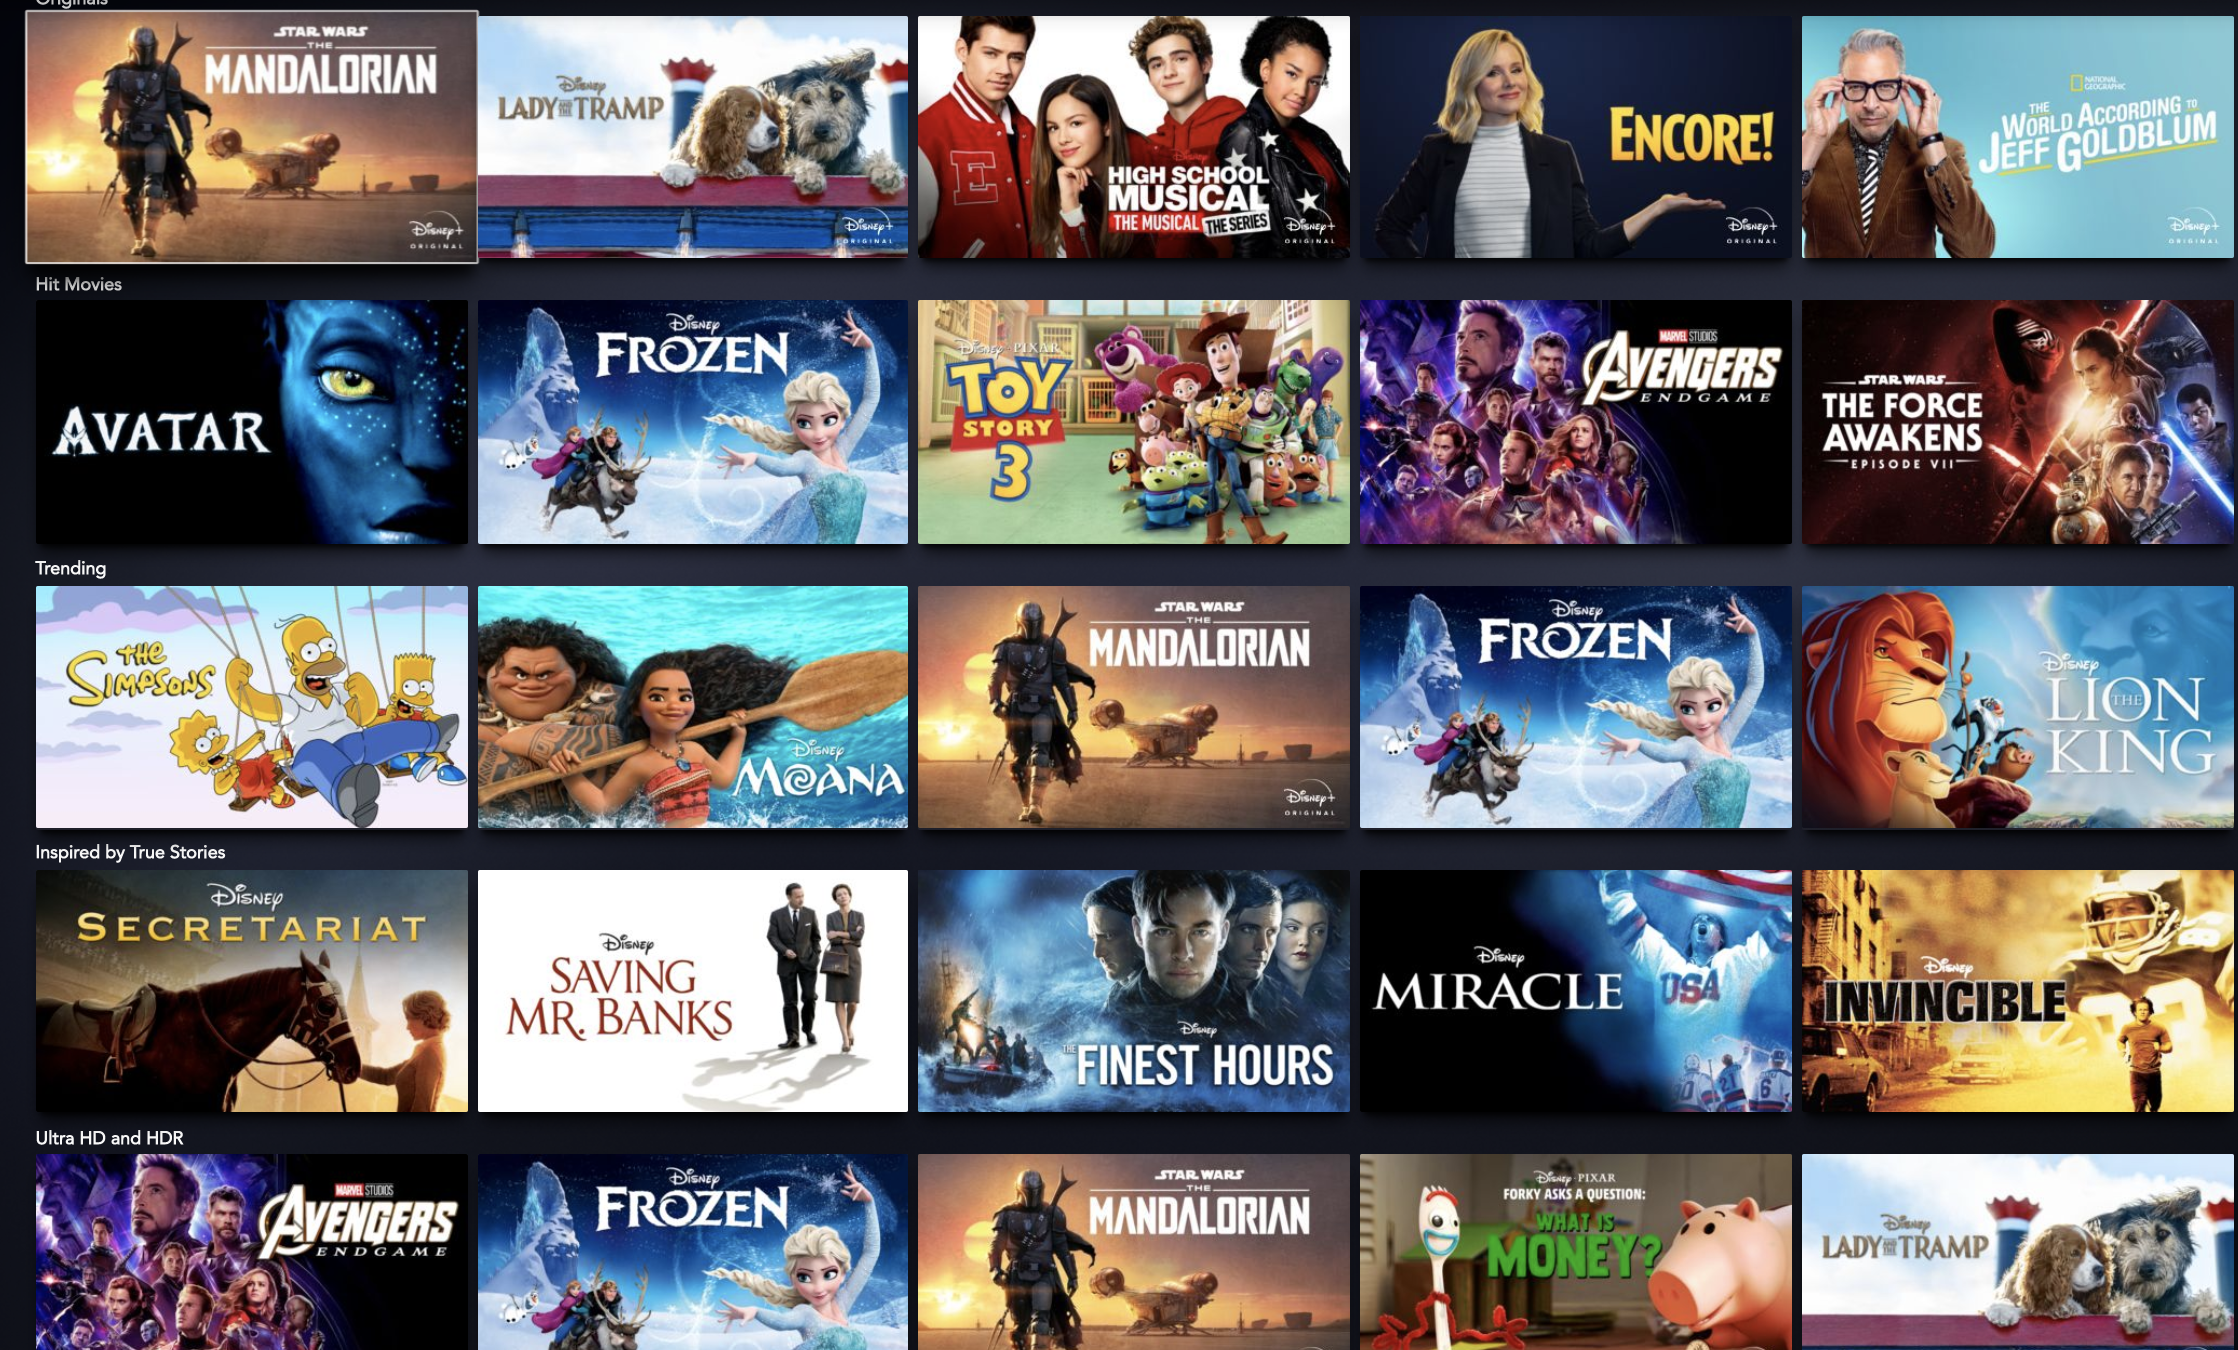 The Disney Plus homepage is full of new and classic movies and shows